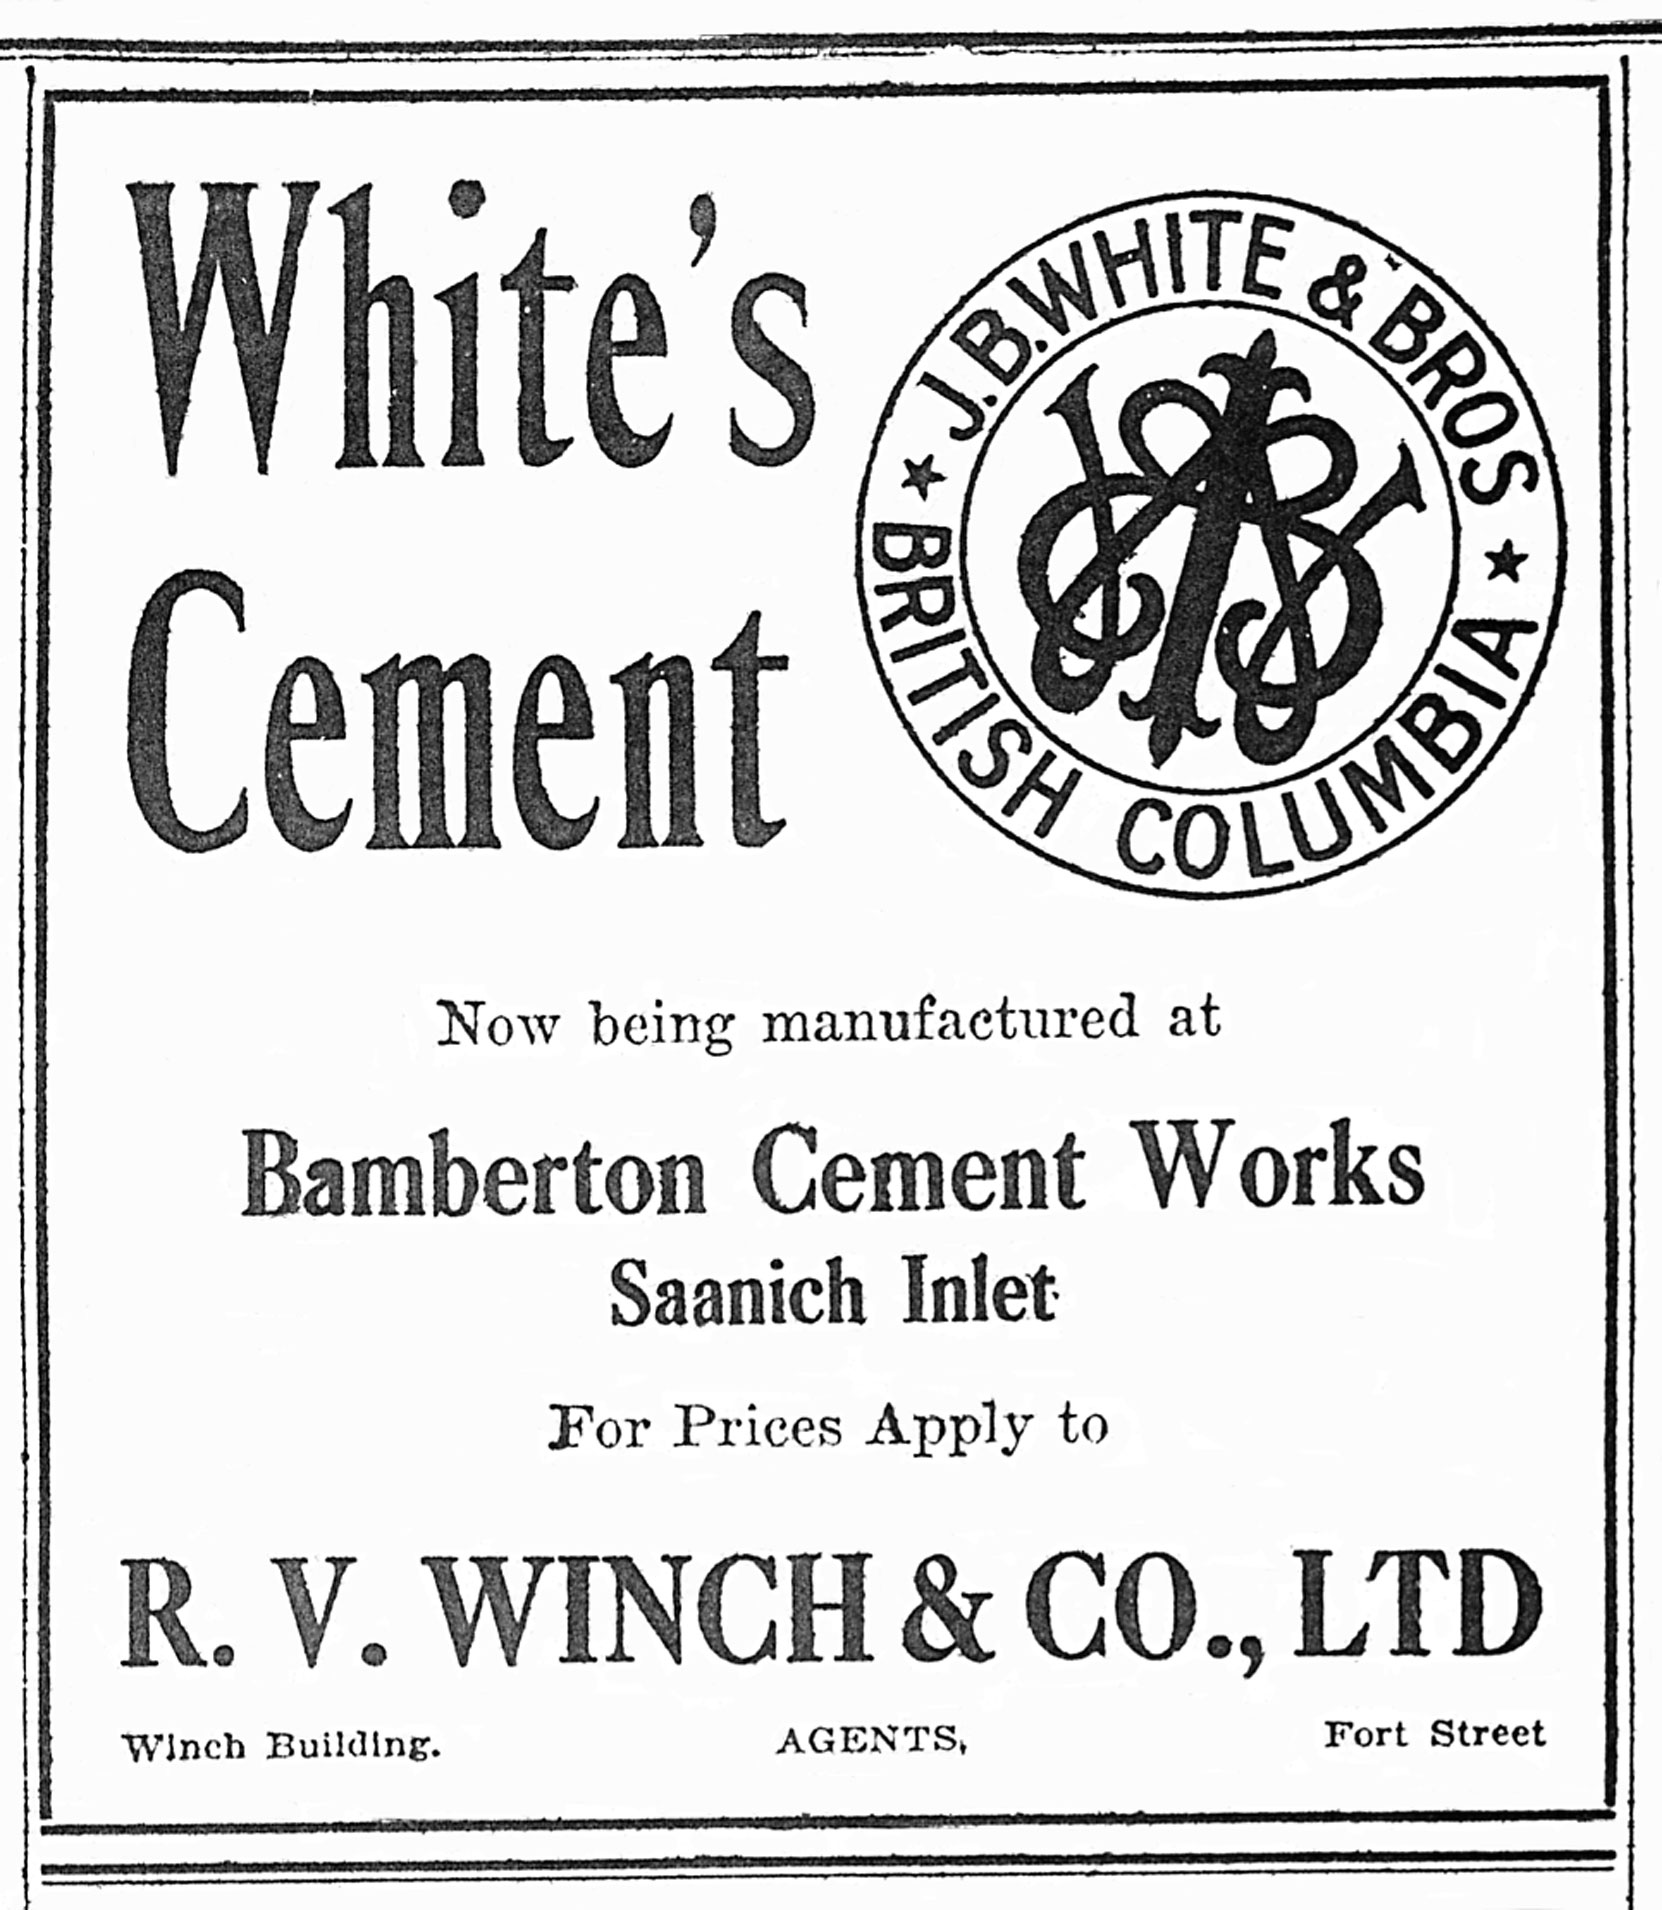 1913 newspaper advertisement for J.B. White cement, manufactured at the Bamberton Cement Works, Saanich Inlet. (Author's collection)